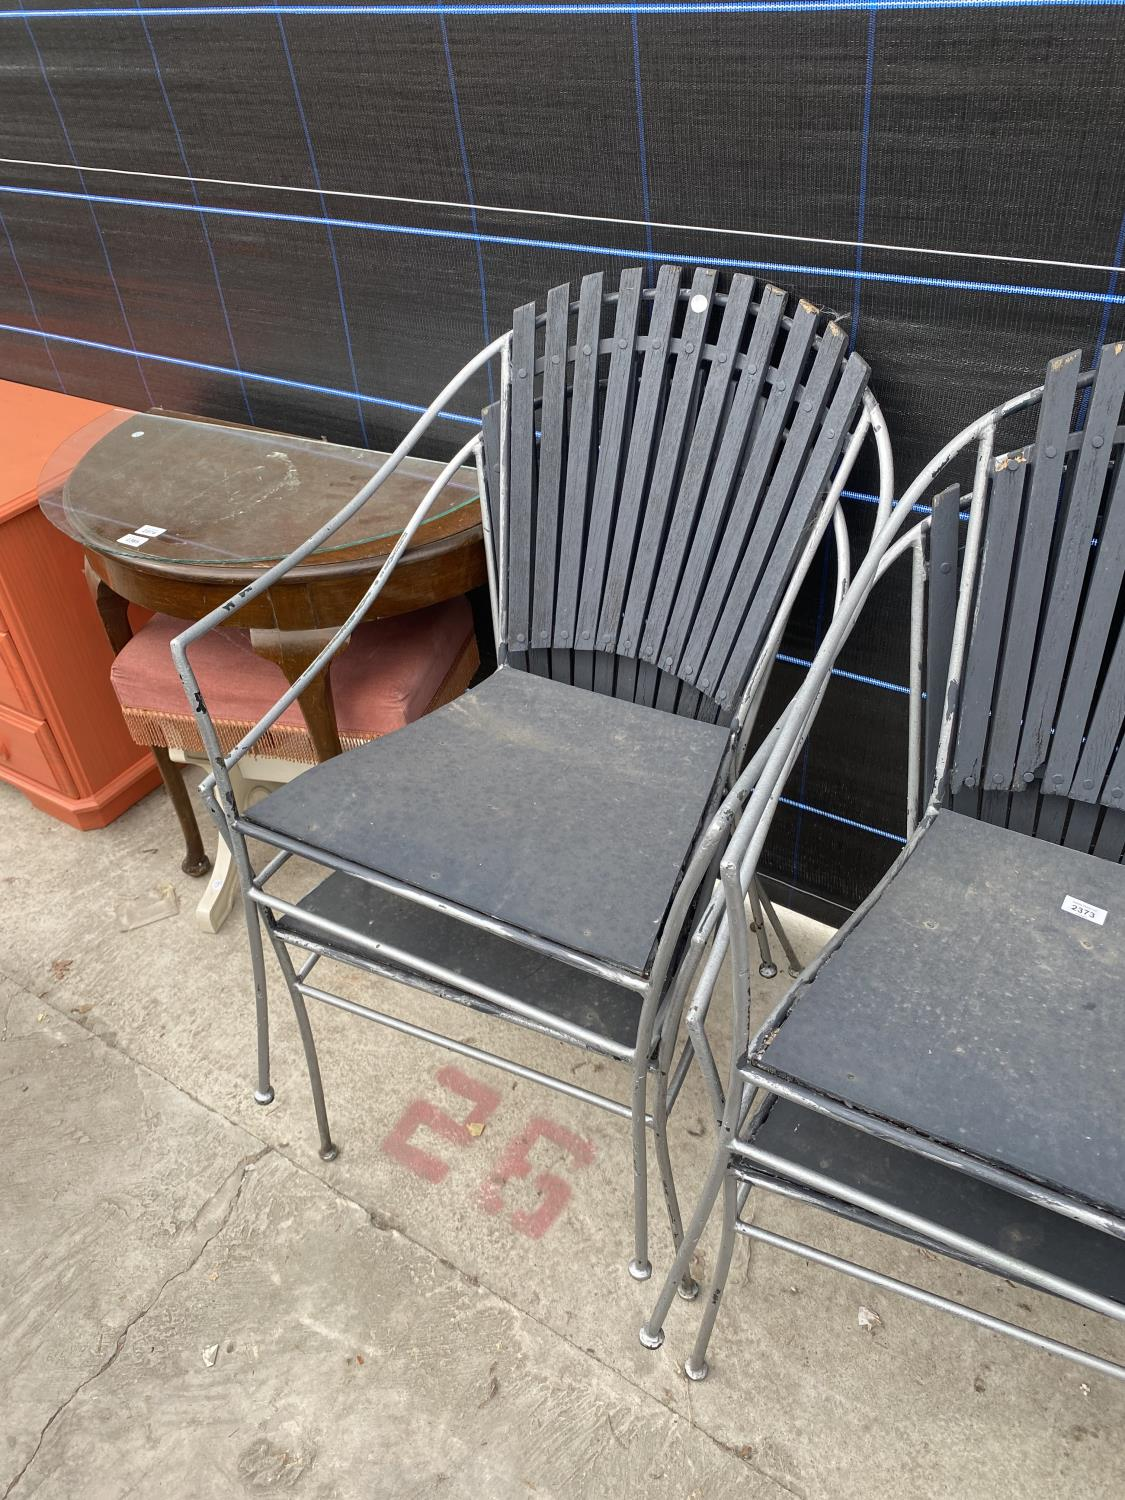 FOUR METAL FRAMED PATIO CHAIRS - Image 3 of 4